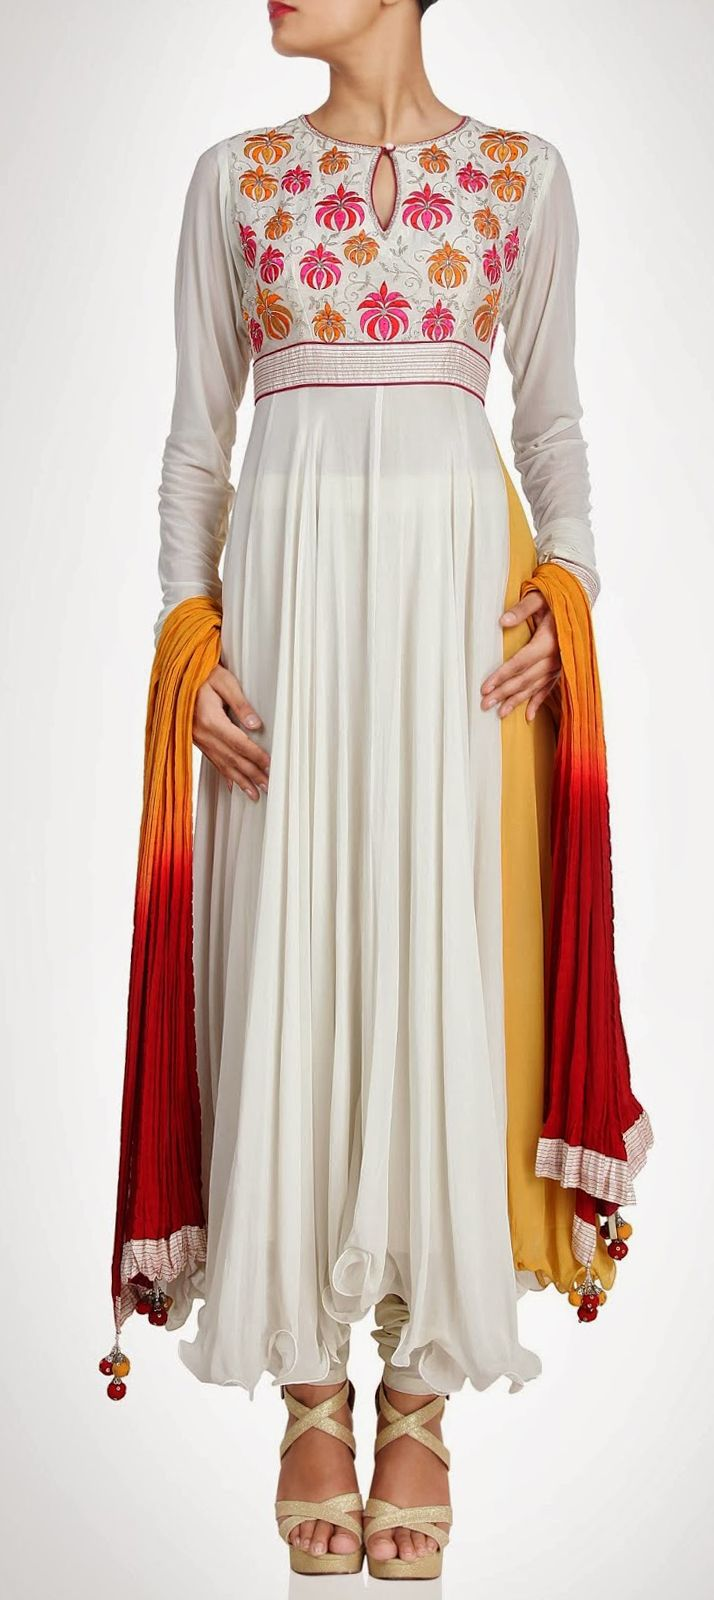 404607: White and Off White color family stitched Party Wear Salwar Kameez.